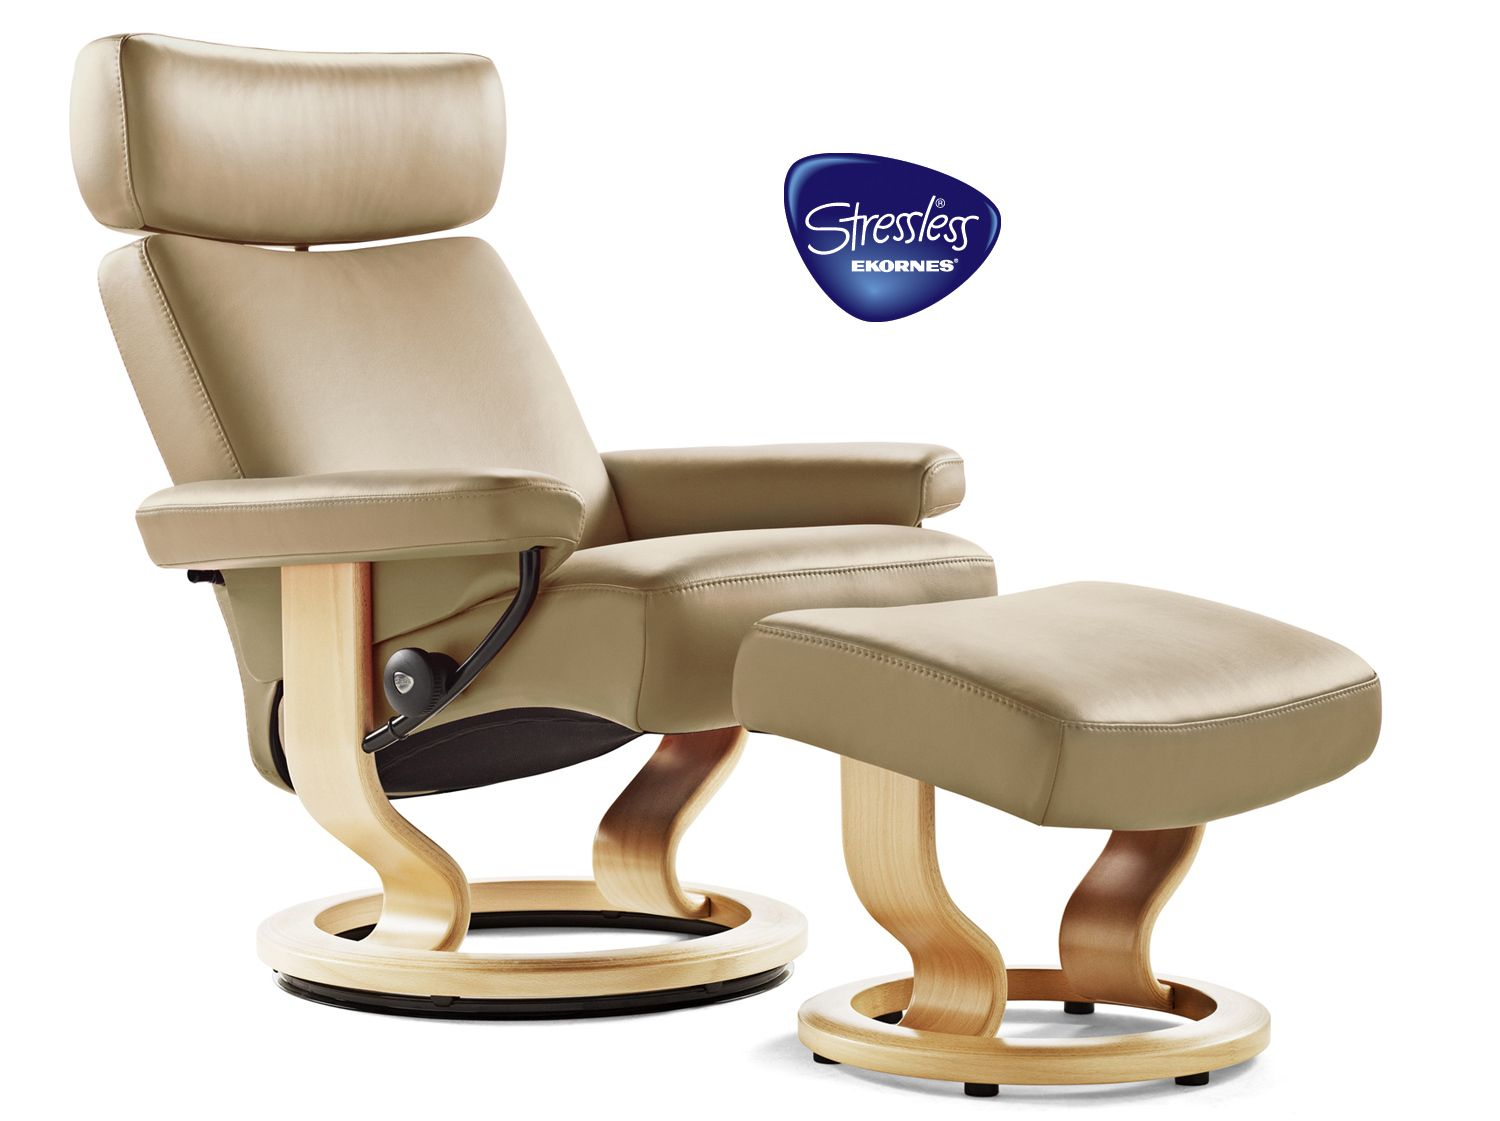 Stressless Orion Recliner and Footstool at Dansk.   RECLINE.IN.STYLE ...